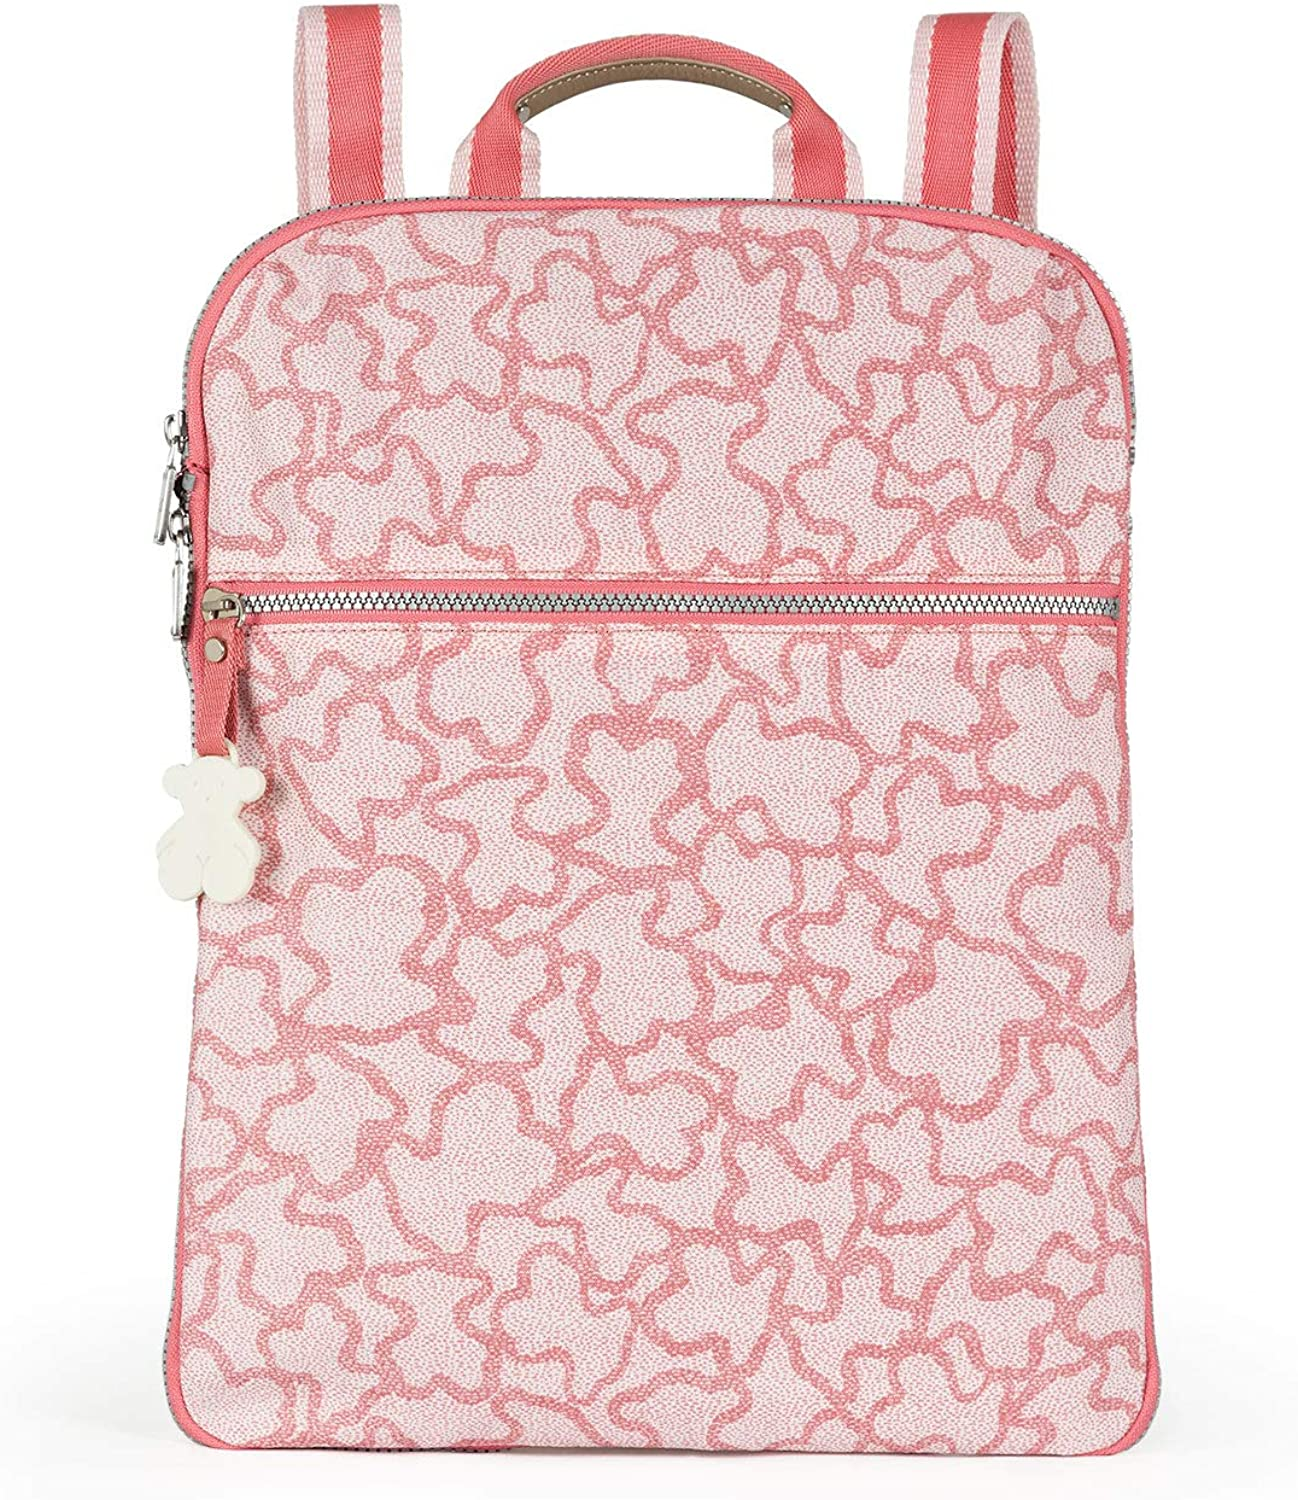 TOUS Kaos New Colores Pink Colored Nylon Backpack